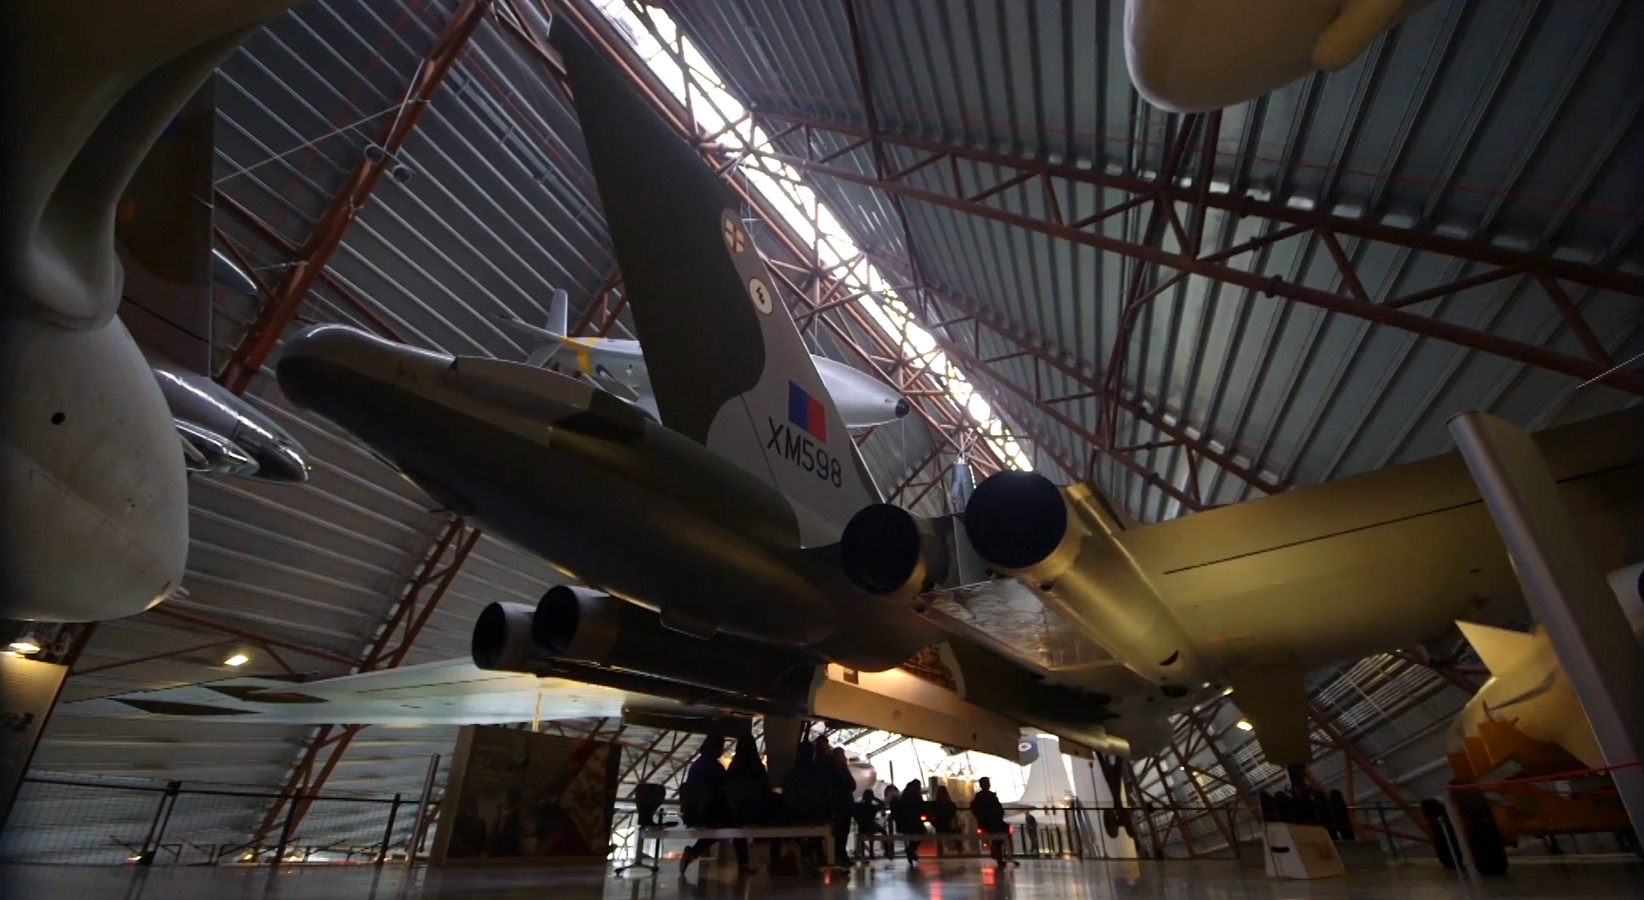 Cosford – A Great Family Day Out